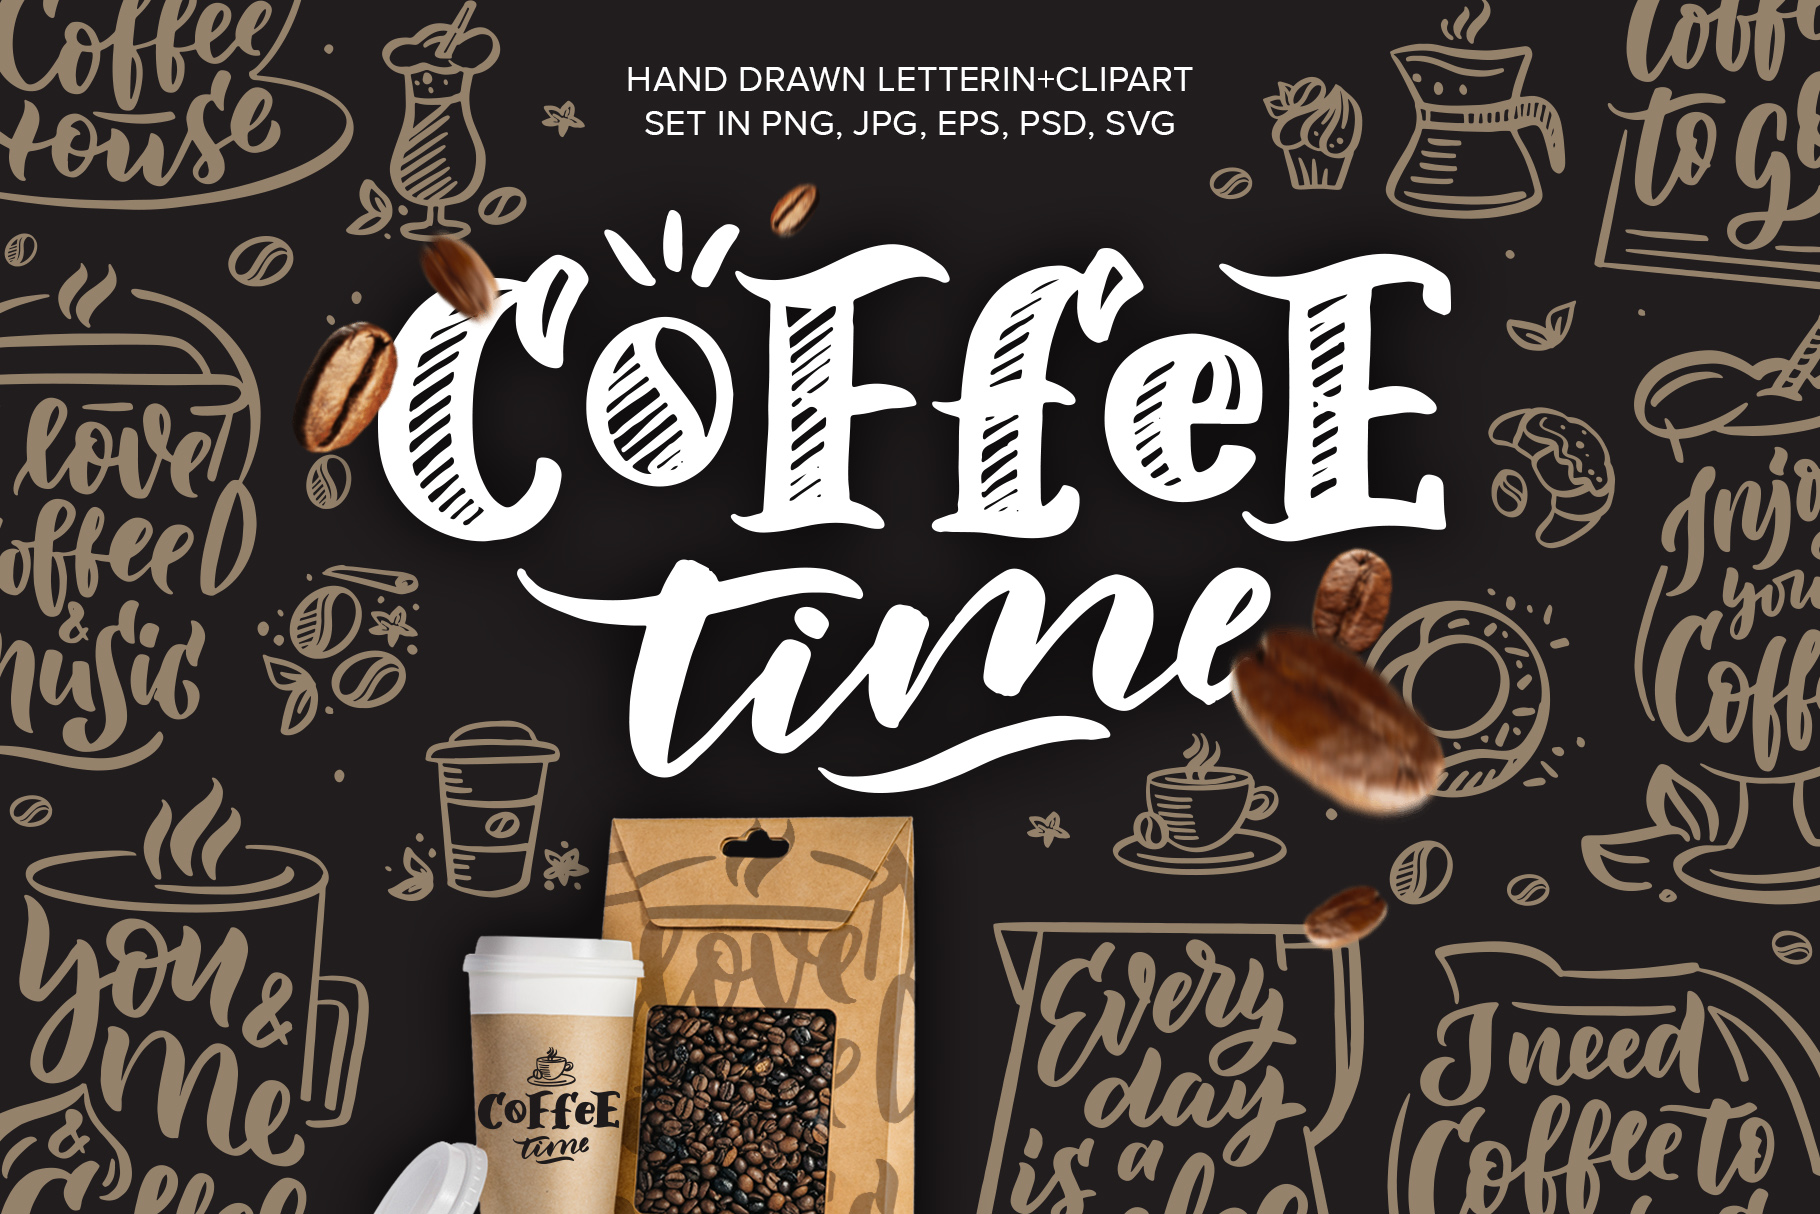 Coffee lettering clipart, vintage example image 1